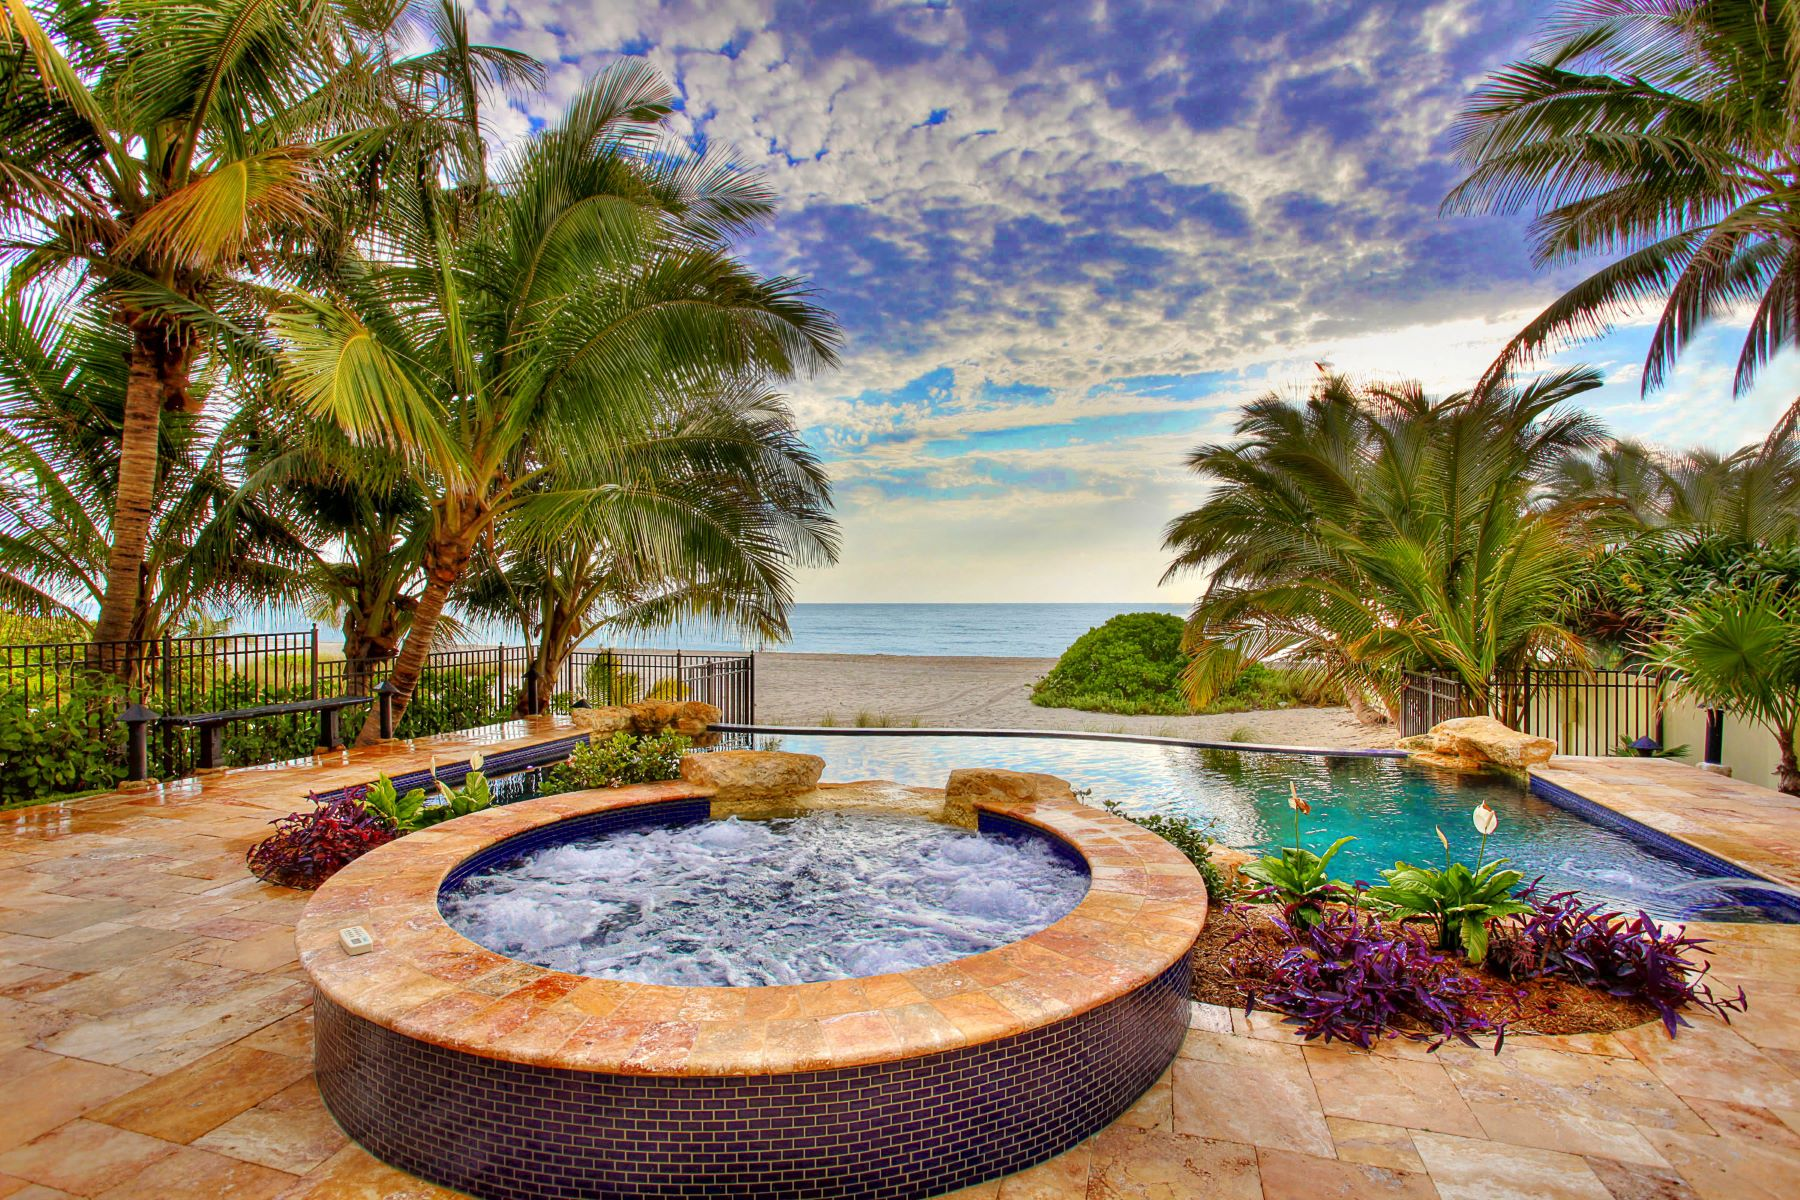 Single Family Homes for Sale at 101 Ocean Blvd Golden Beach, Florida 33160 United States